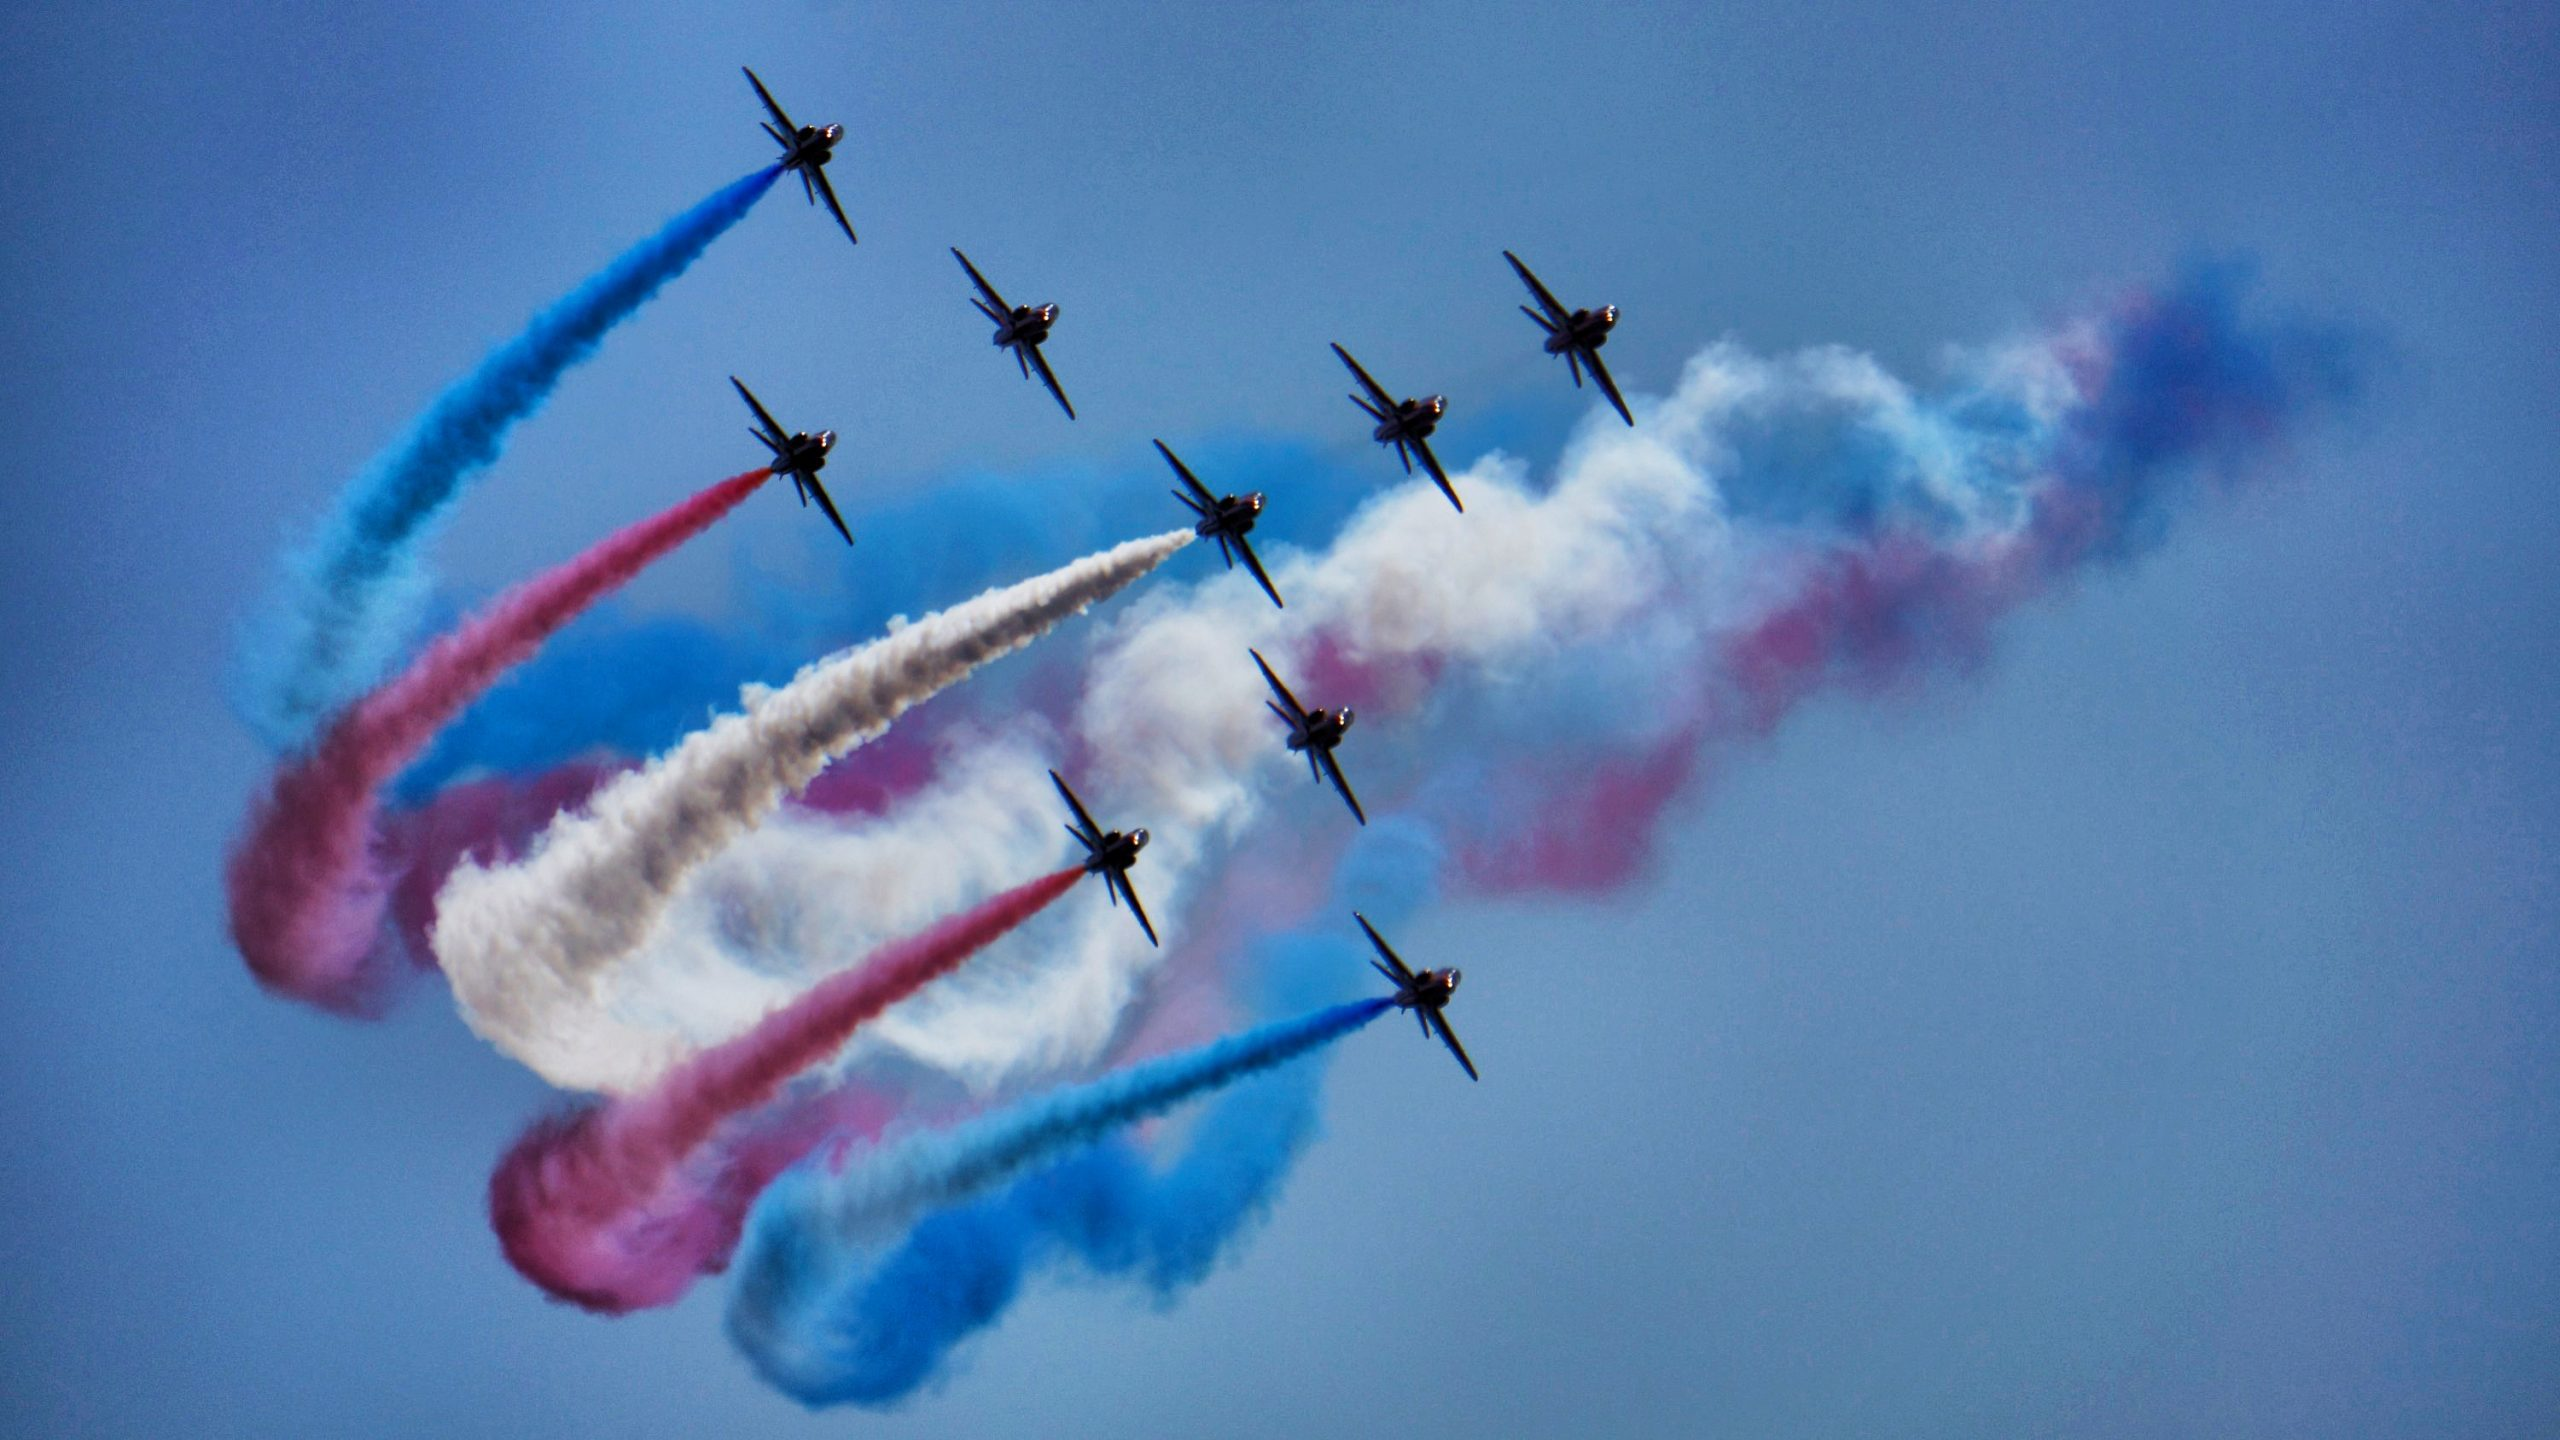 Bournemouth_Air_Festival_2013_(9643217705)